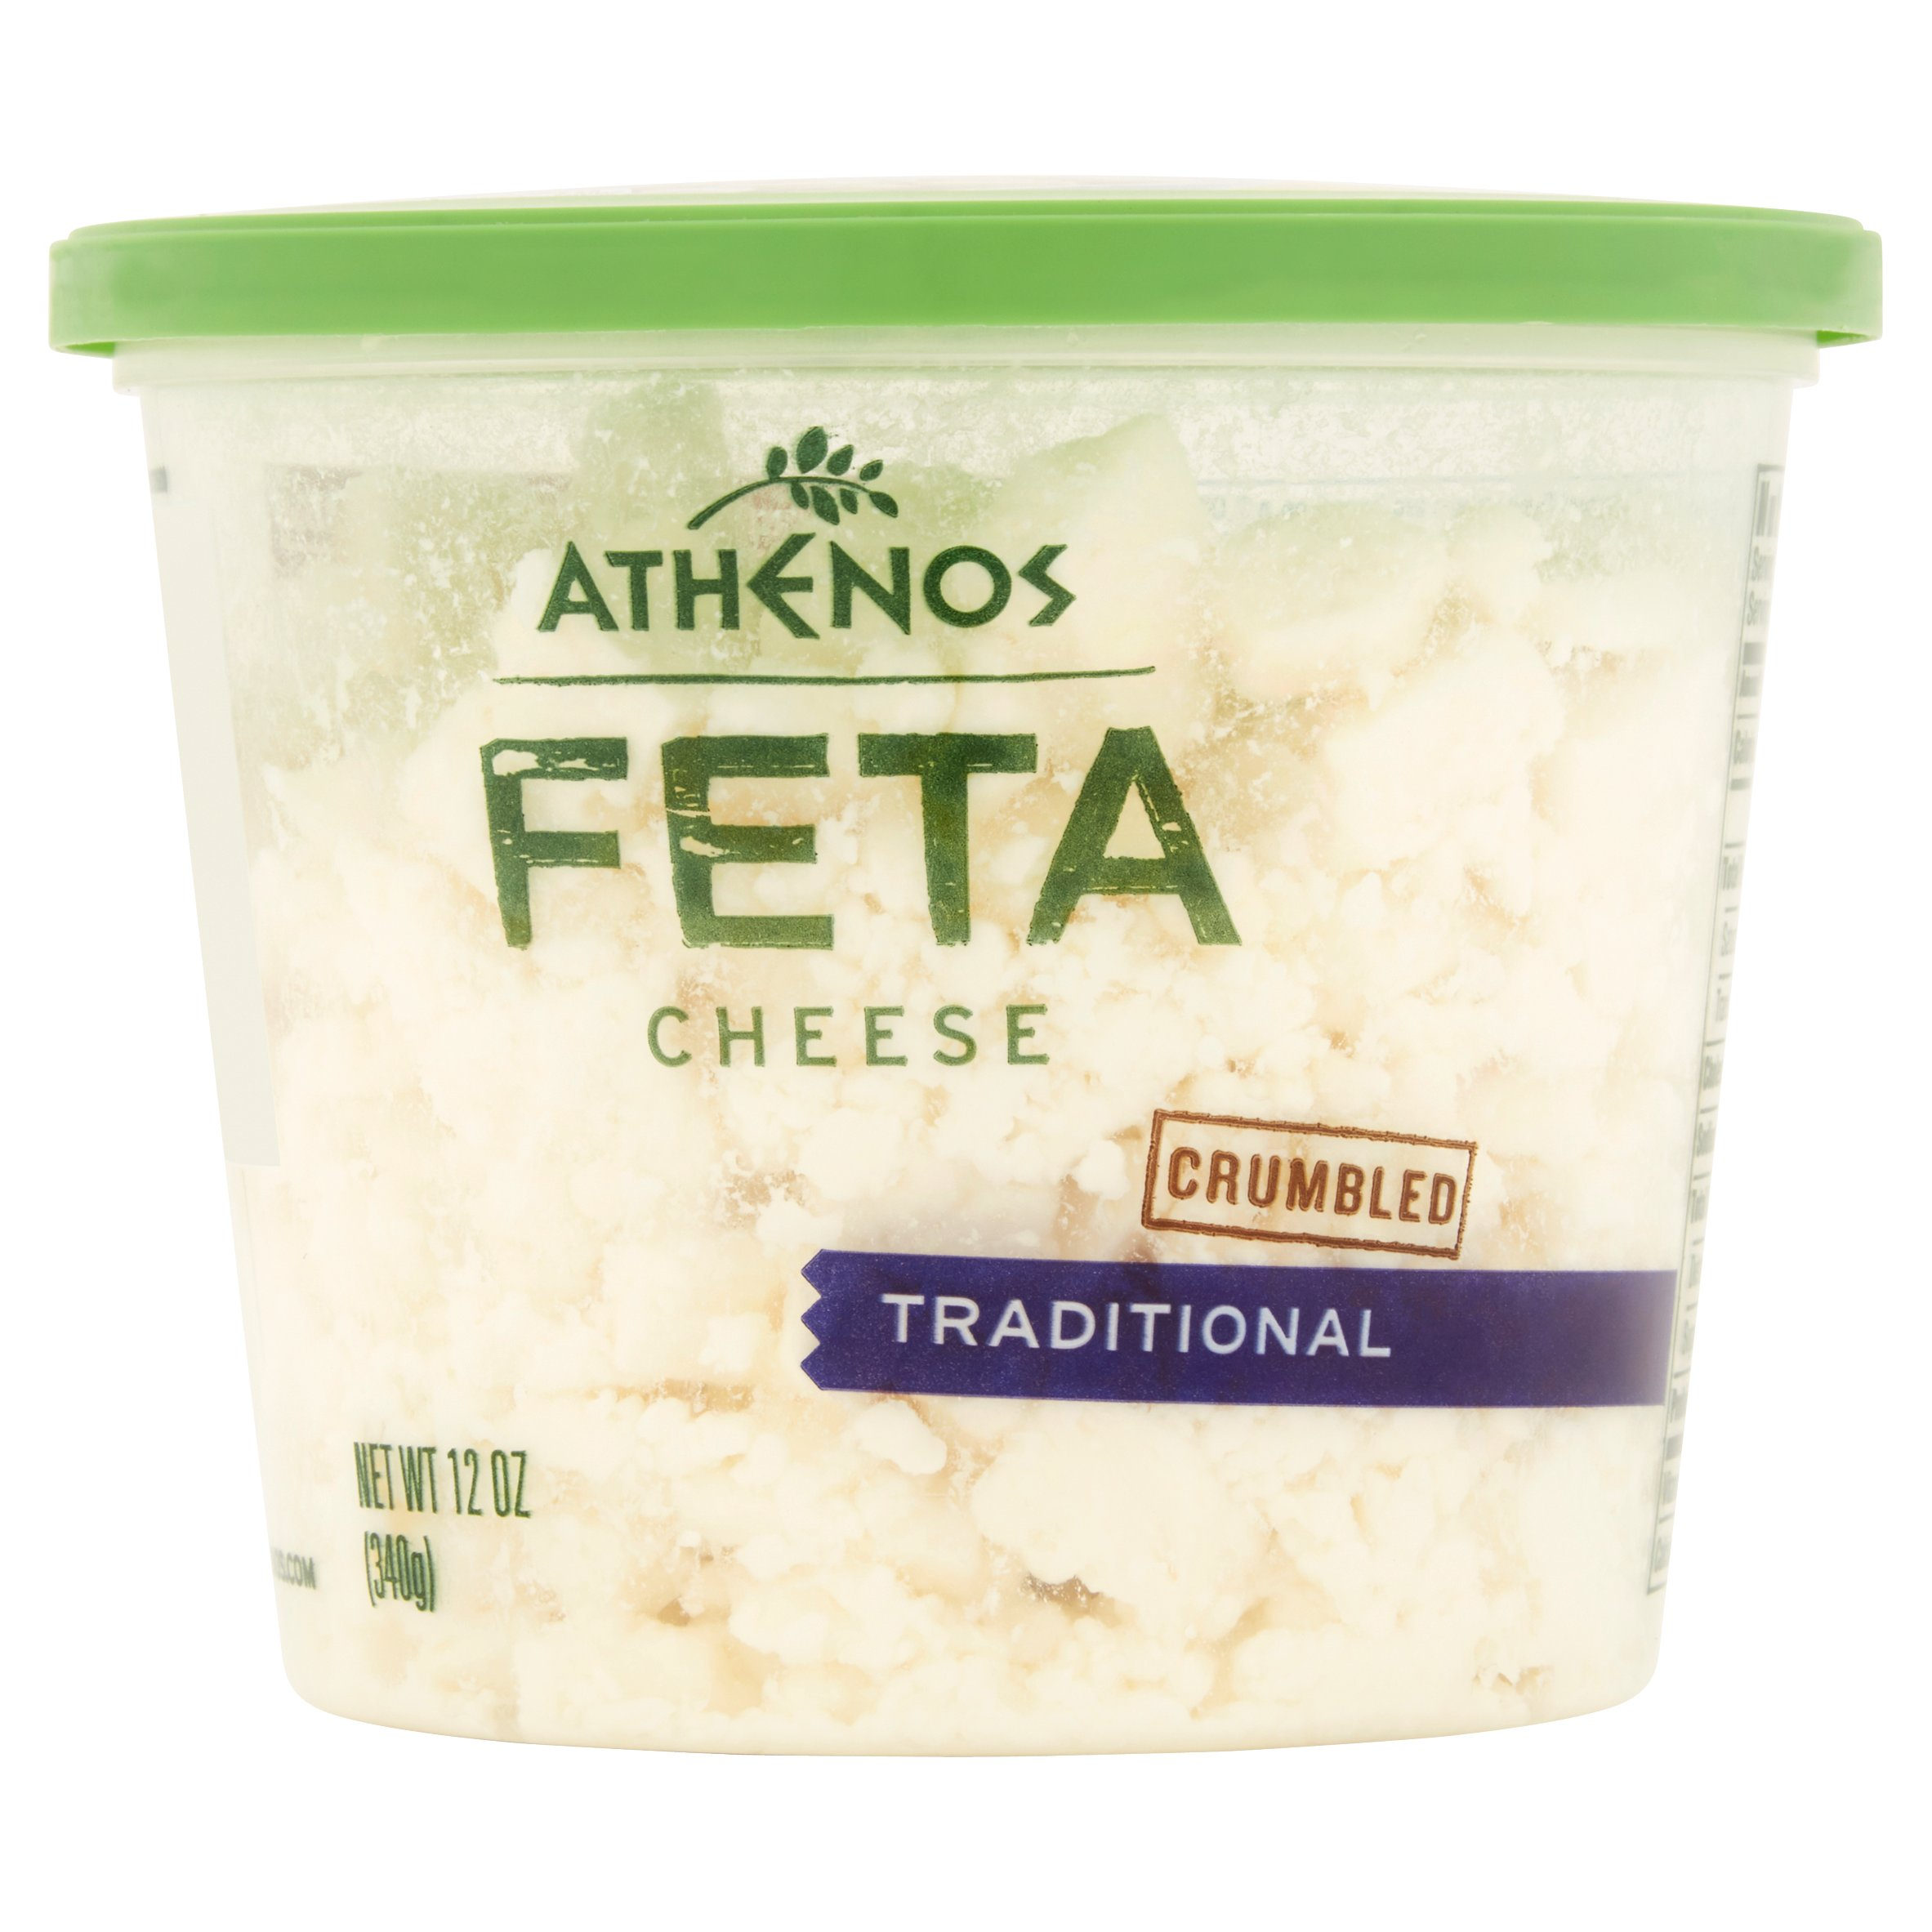 Athenos Traditional Crumbled Feta Cheese, 12 oz